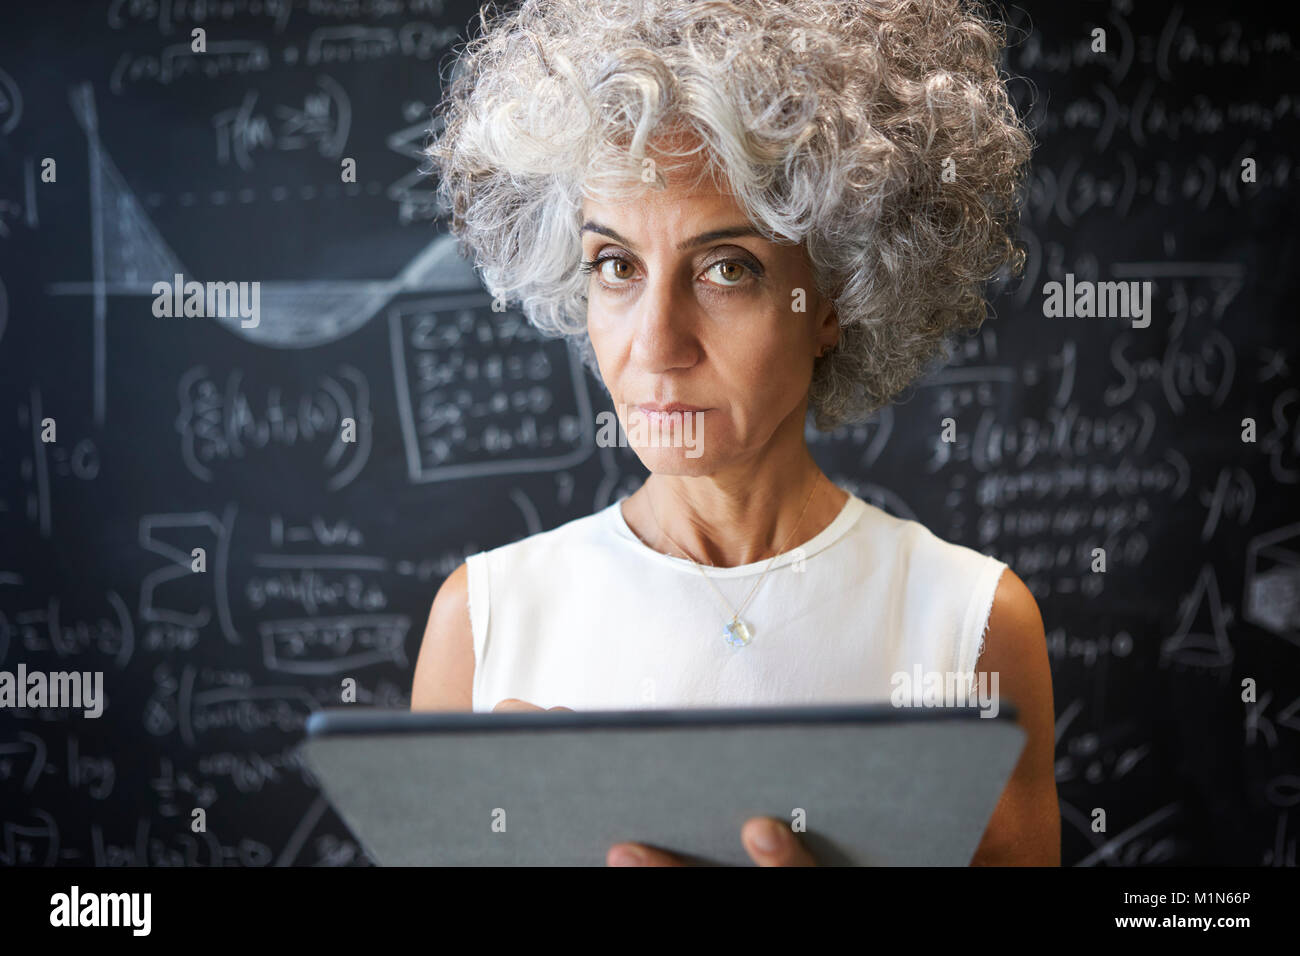 Middle aged academic woman using tablet looking to camera - Stock Image